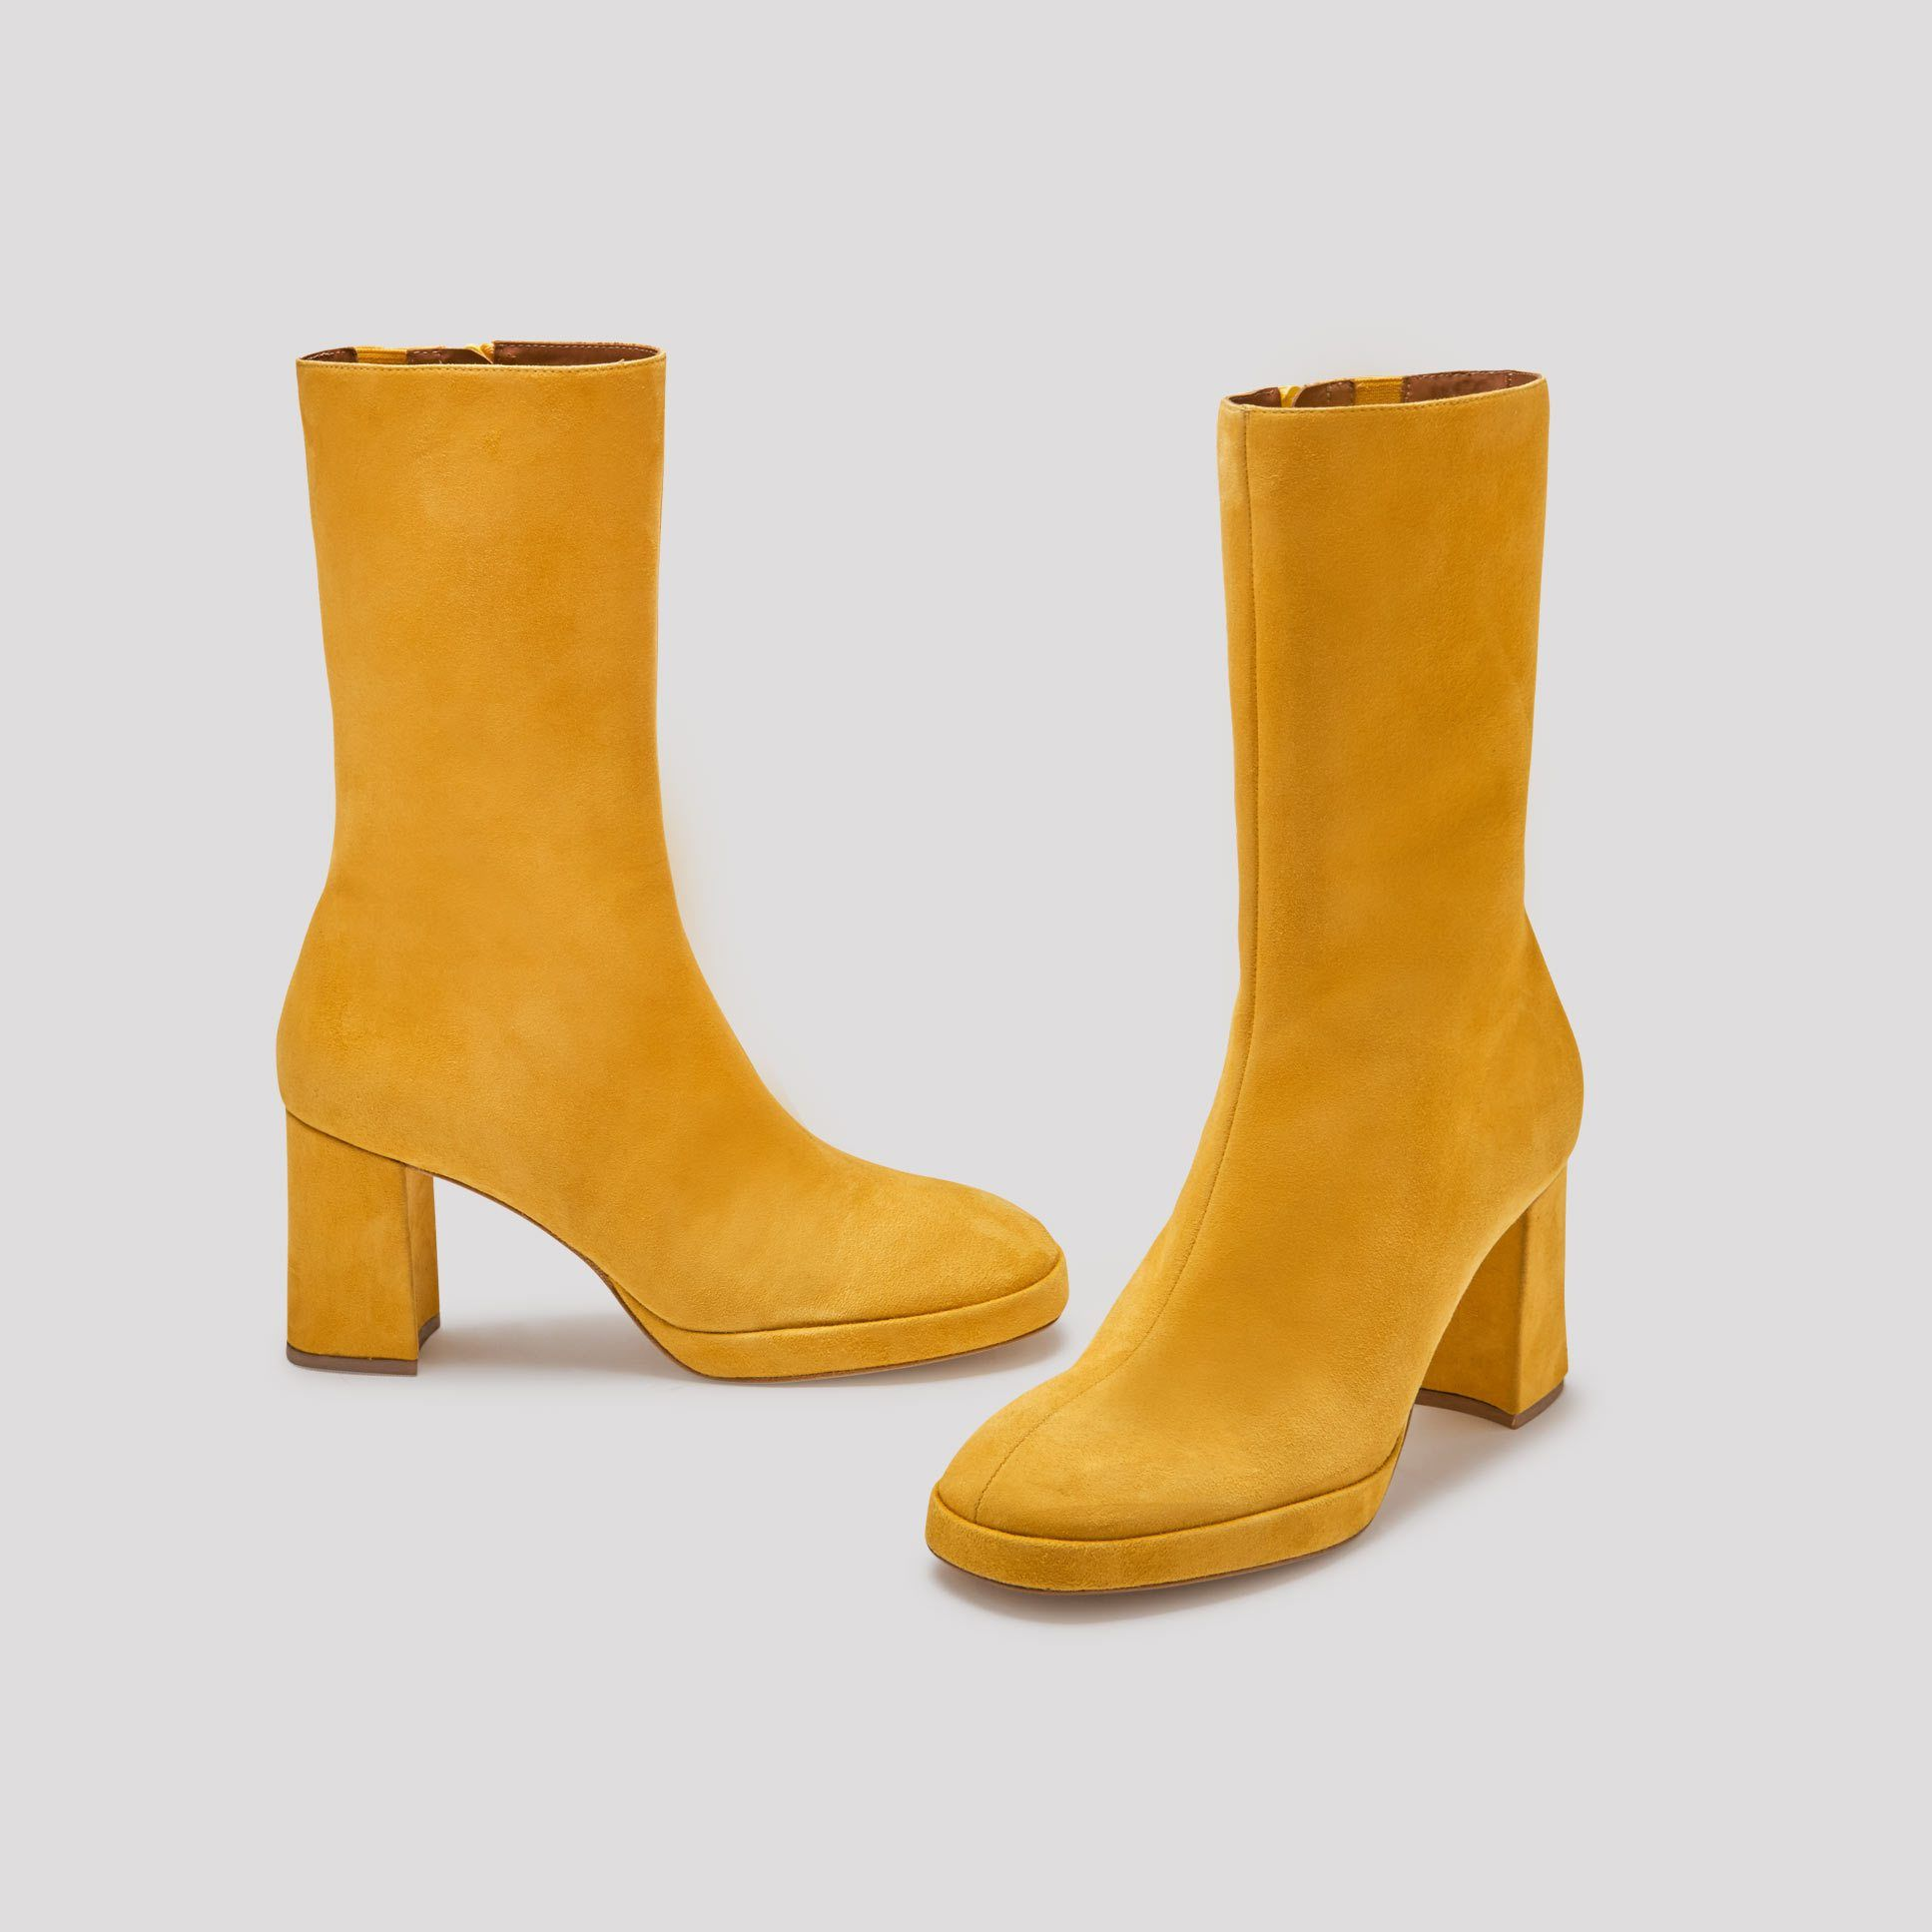 outlet store 7beaa b50dd CARLOTA YELLOW SUEDE BOOTS BY MIISTA